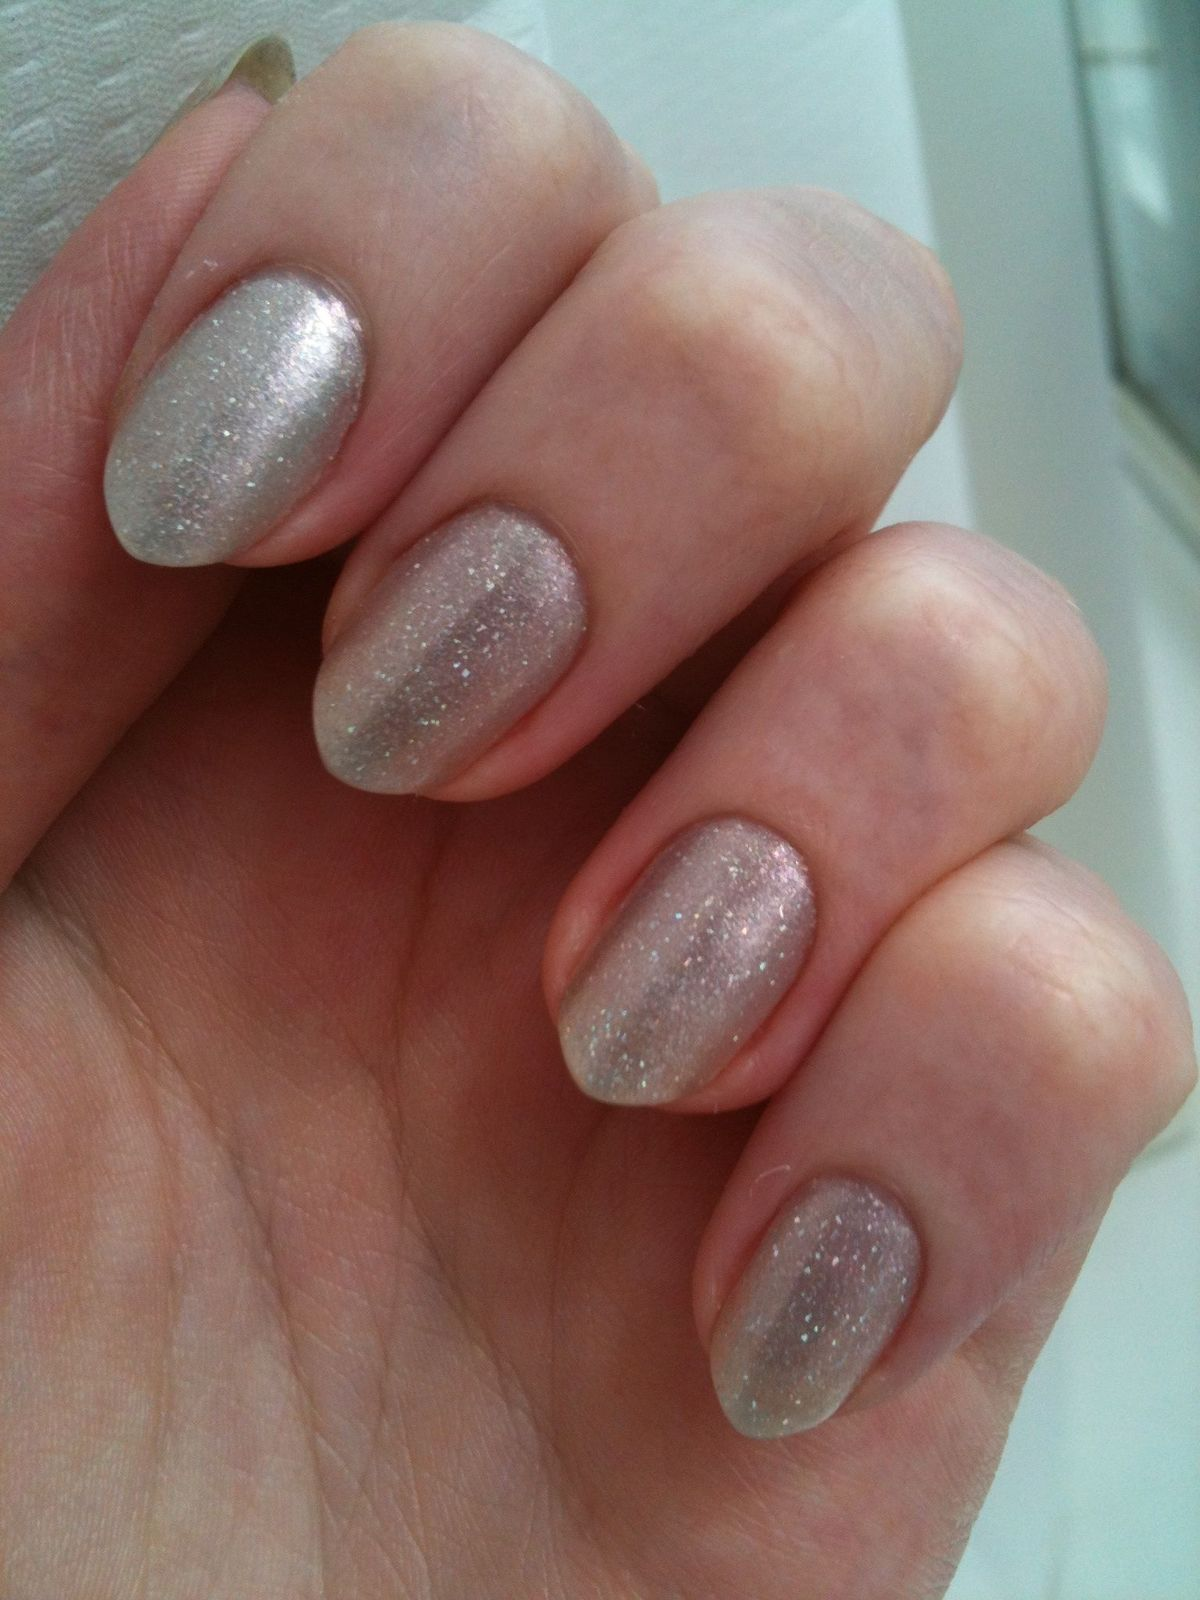 Nail Polish Discussion - Any Brand - Page 545